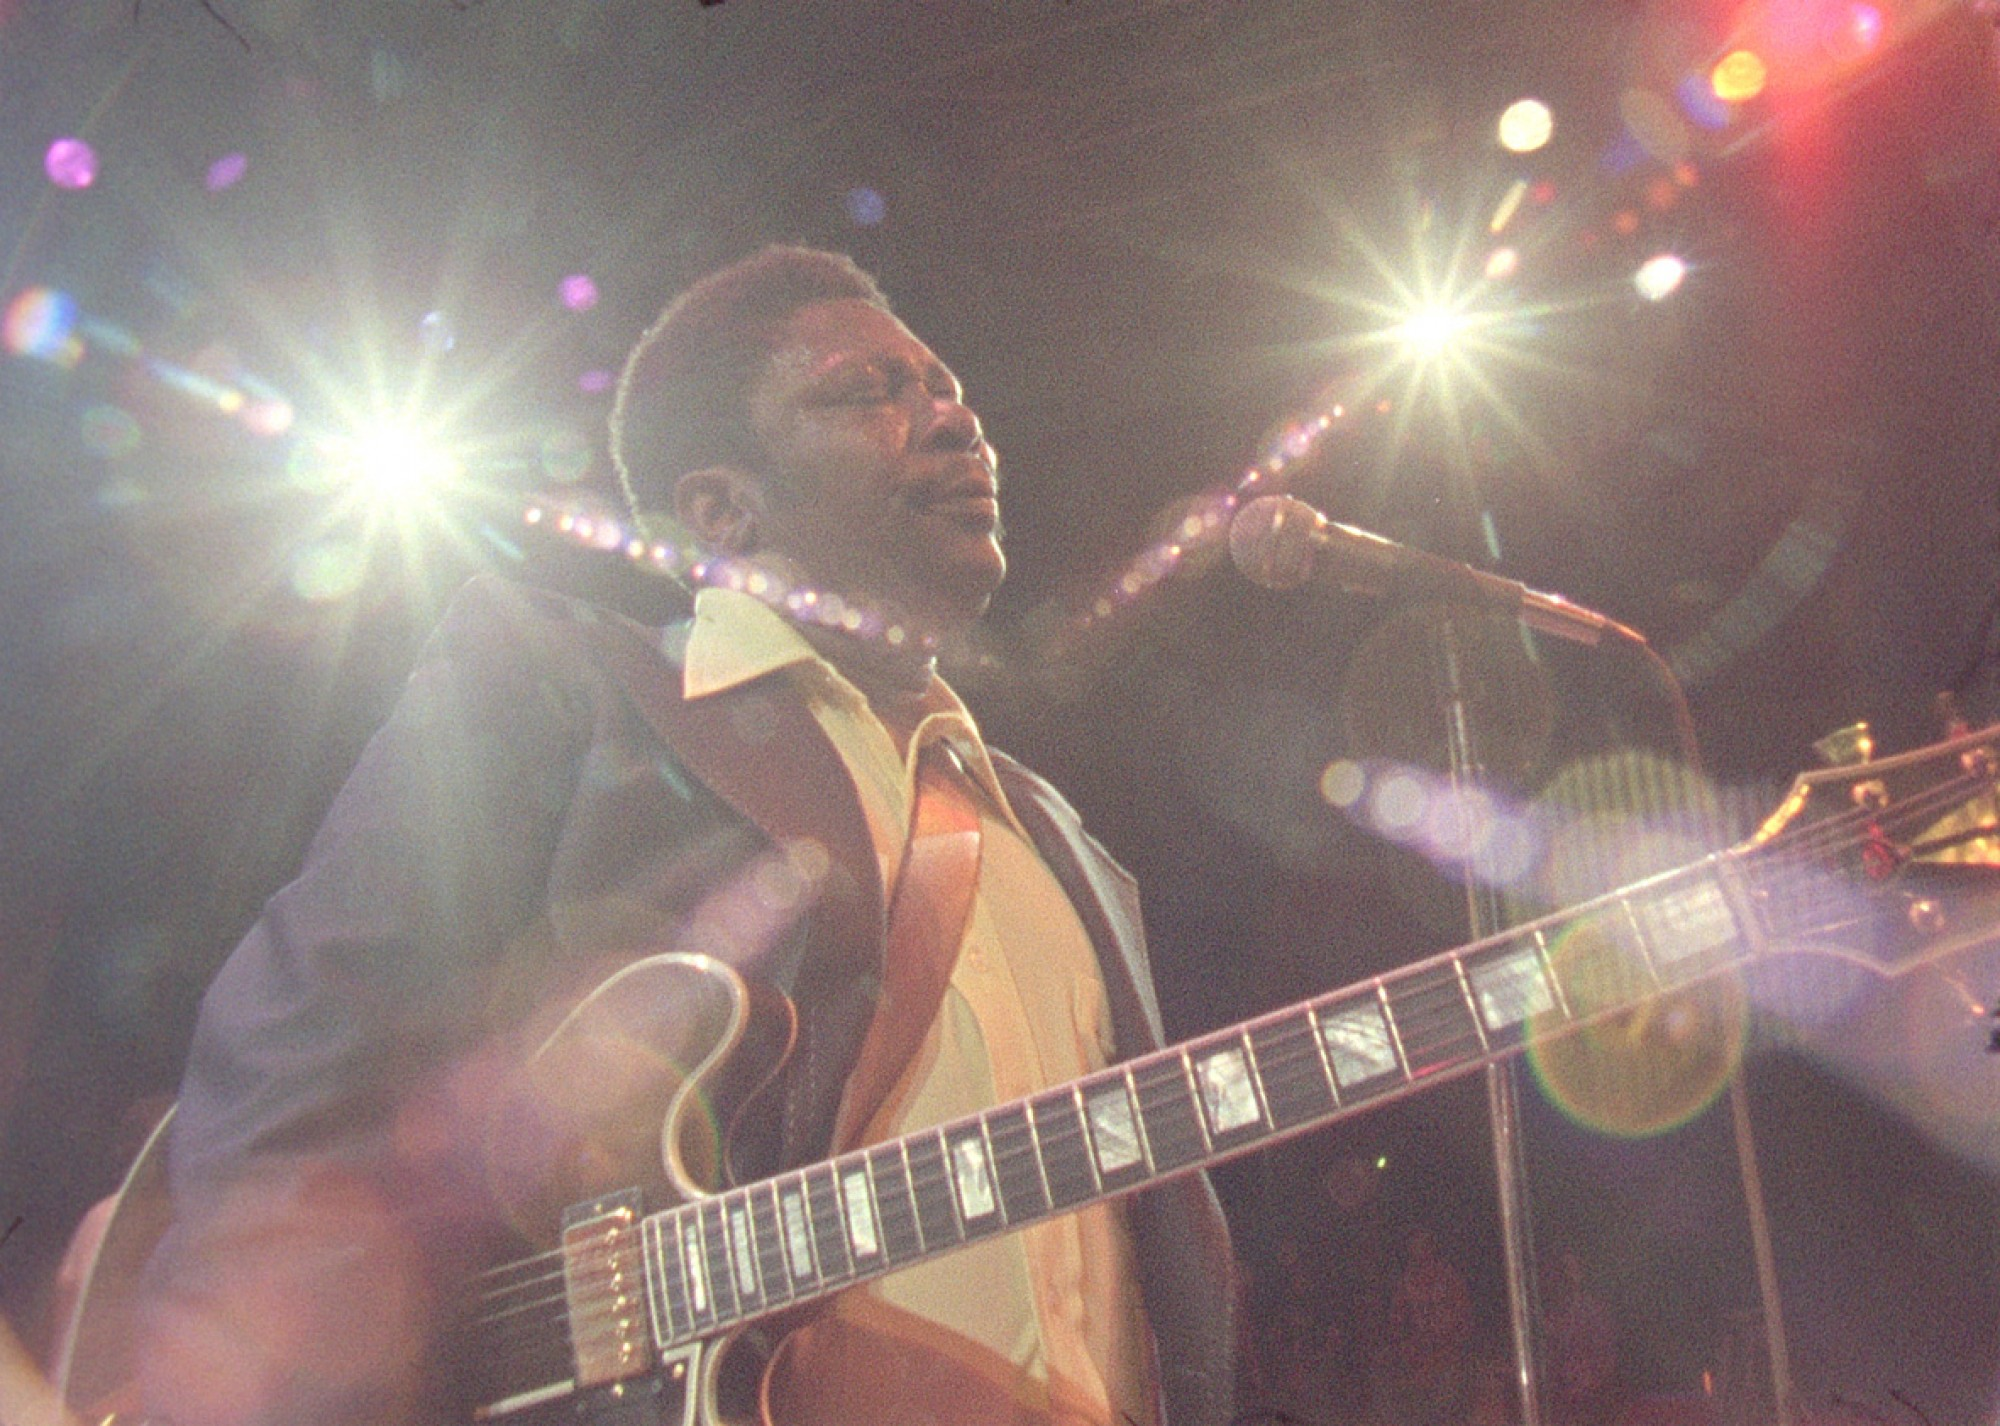 soul power bb king1 7753164540 o